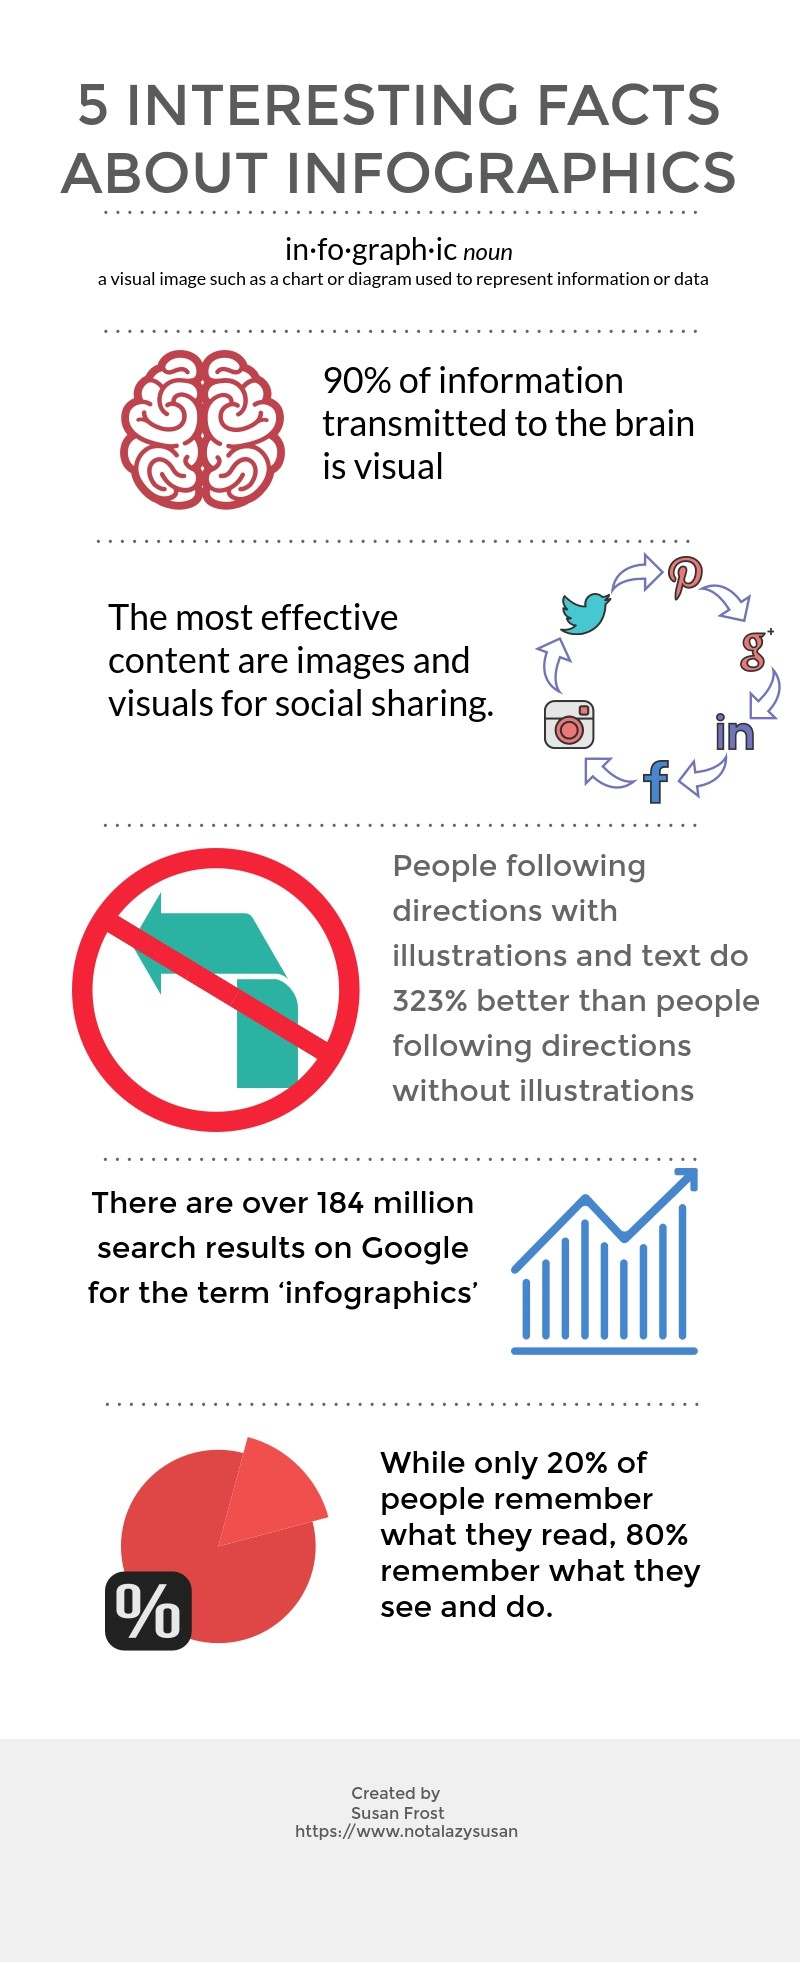 My Visme Review: Creating Infographics